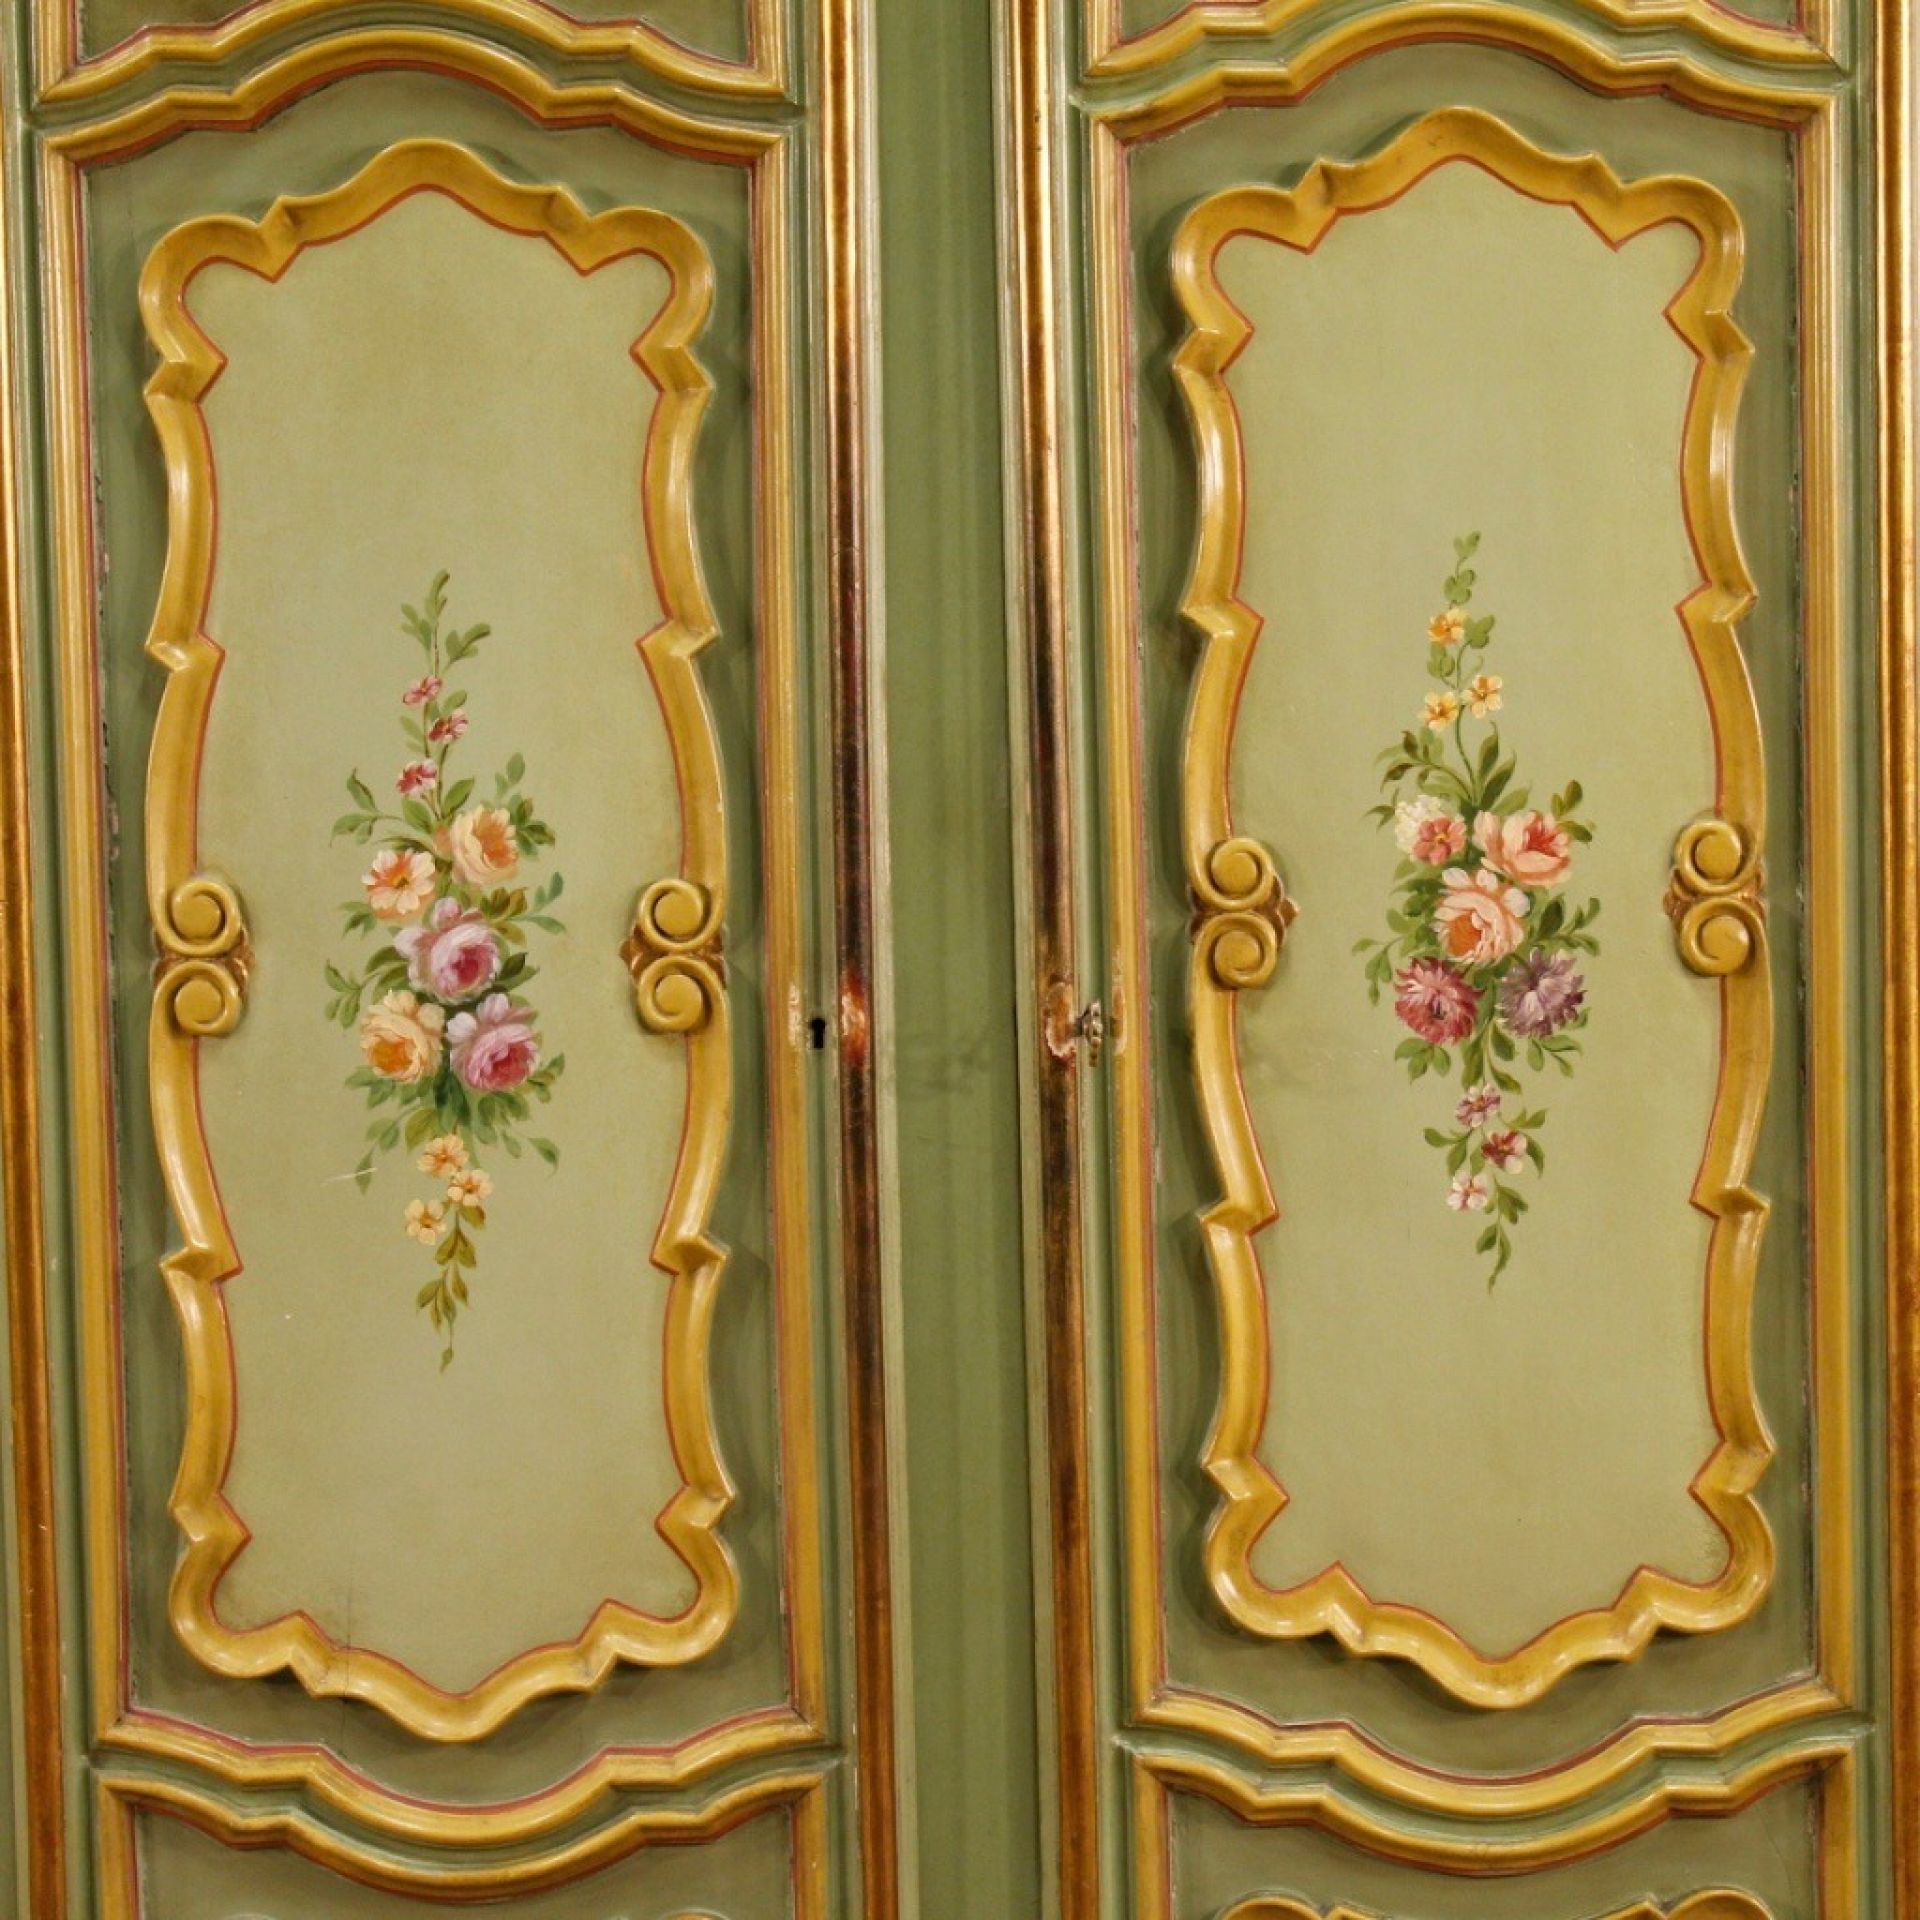 20th Century In Painted And Gilded Wood Italian Wardrobe, 1970